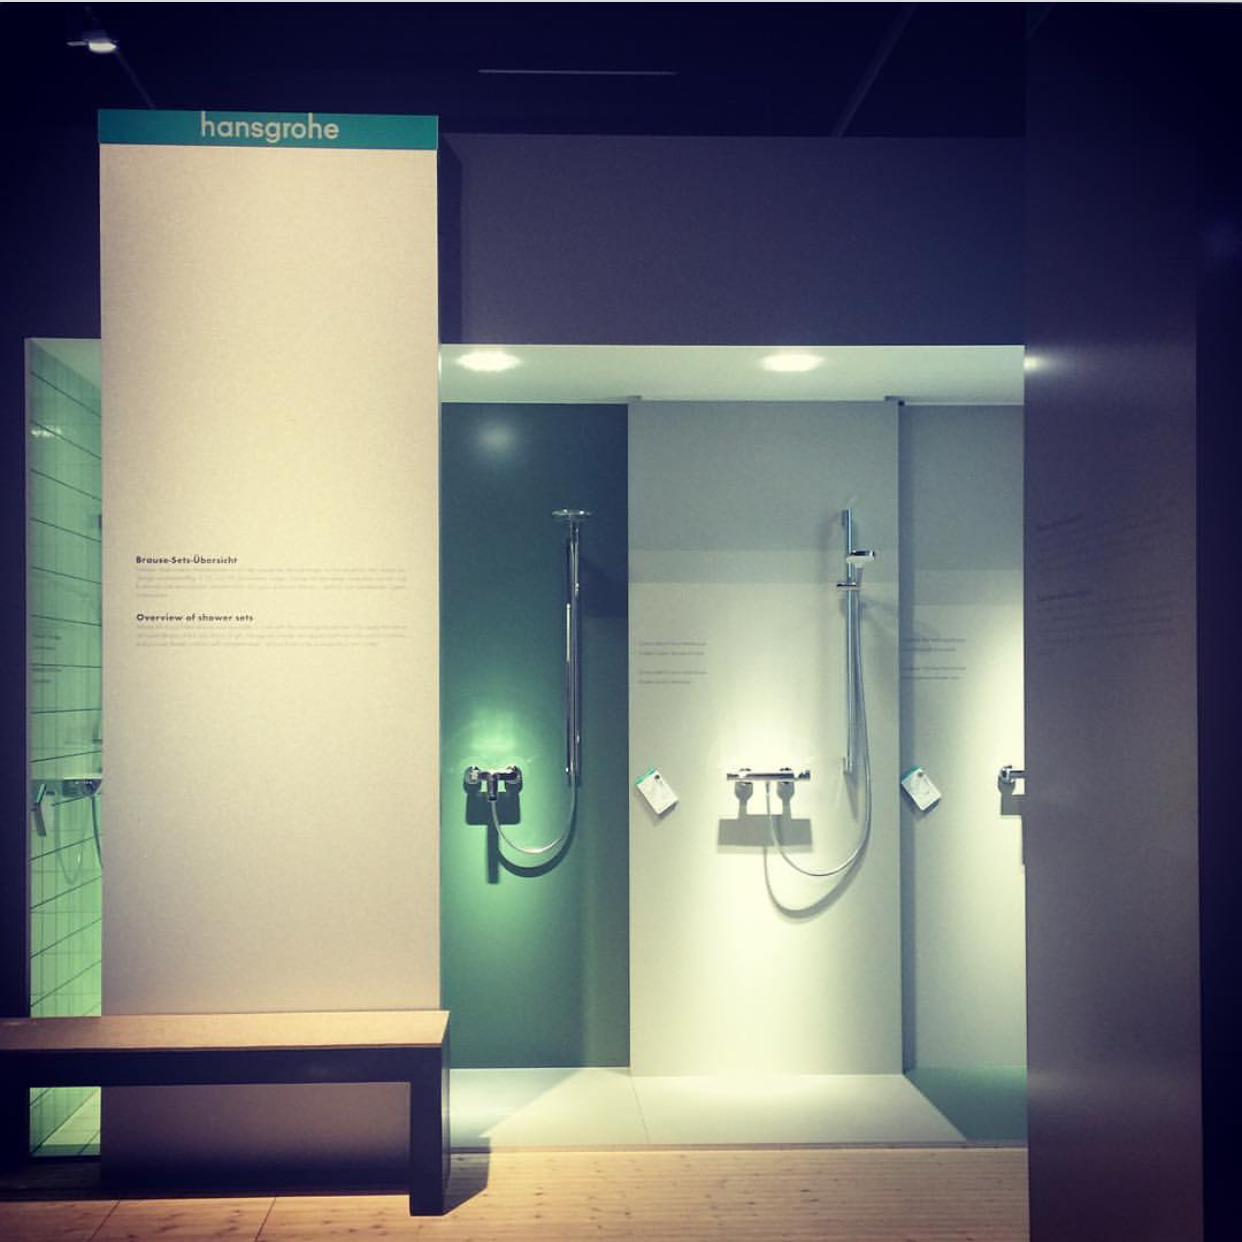 Taking a look through the beautiful exhibition room @ Hansgrohe.